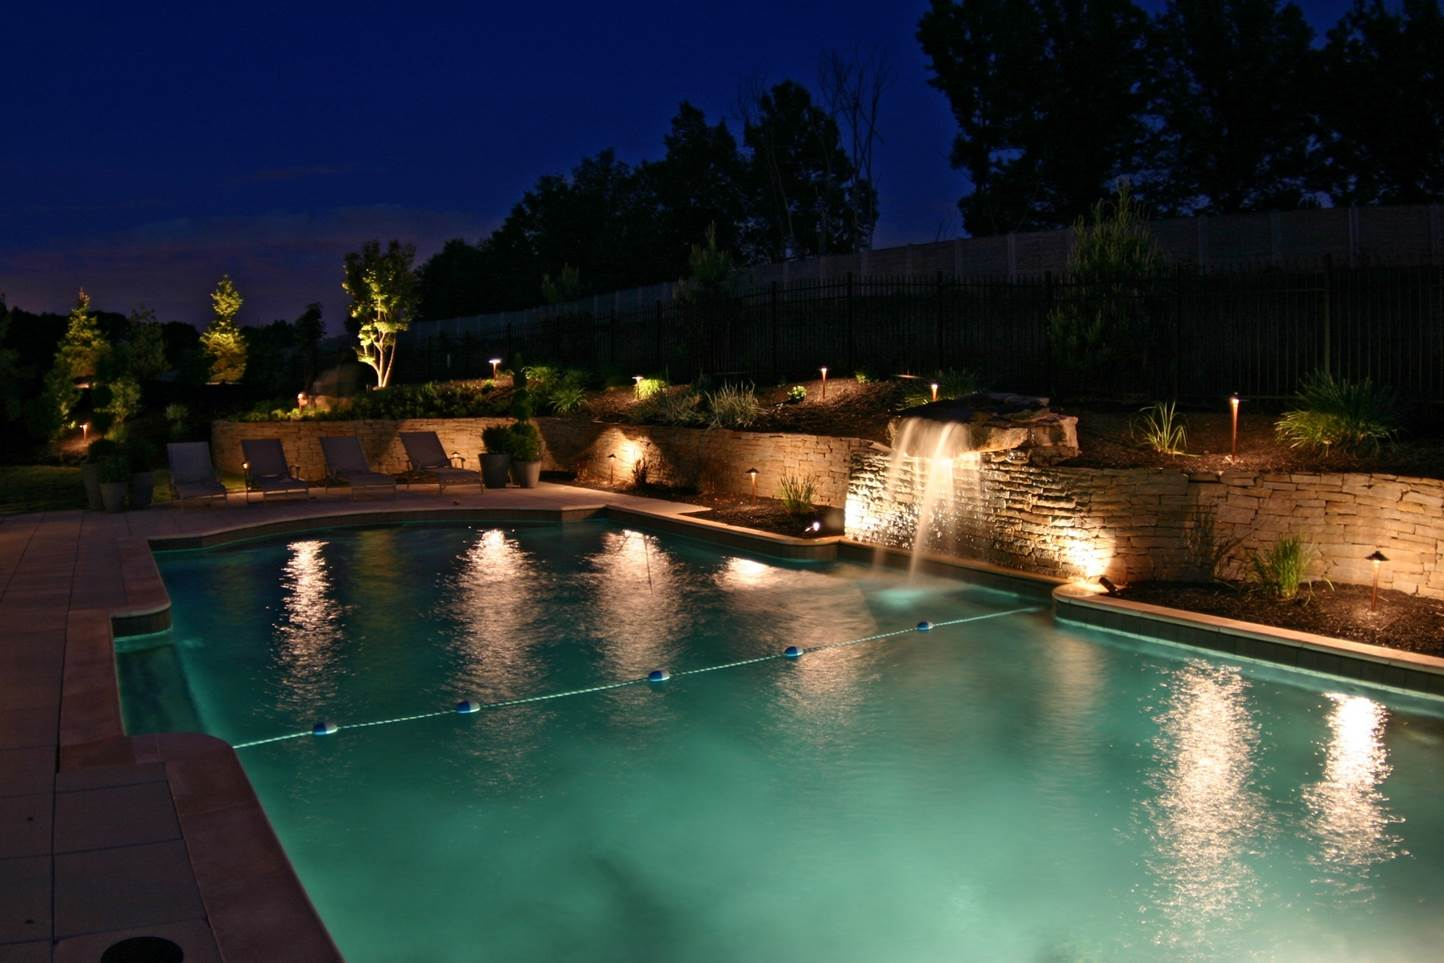 Swimming pool with nighttime lighting